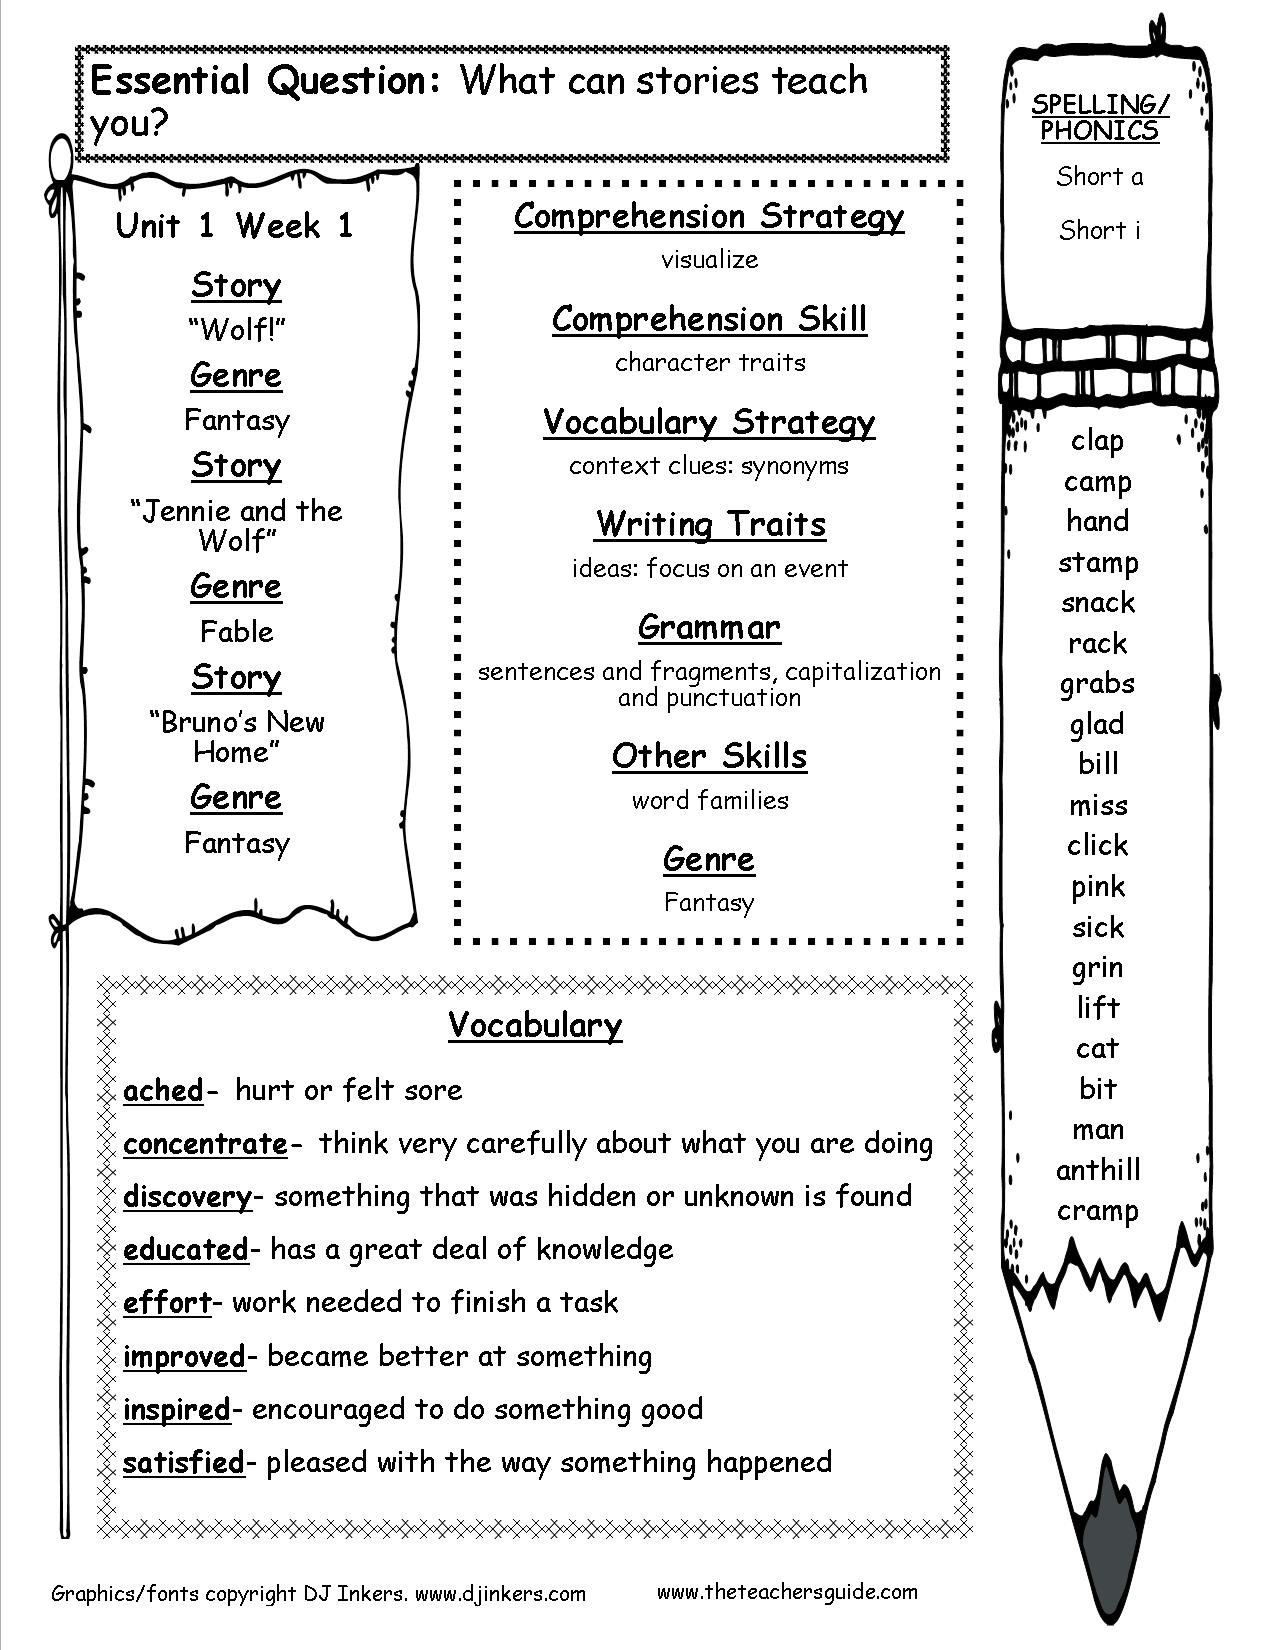 worksheet 3rd gradee printable worksheets image inspirations social stu s 5th class multiplication